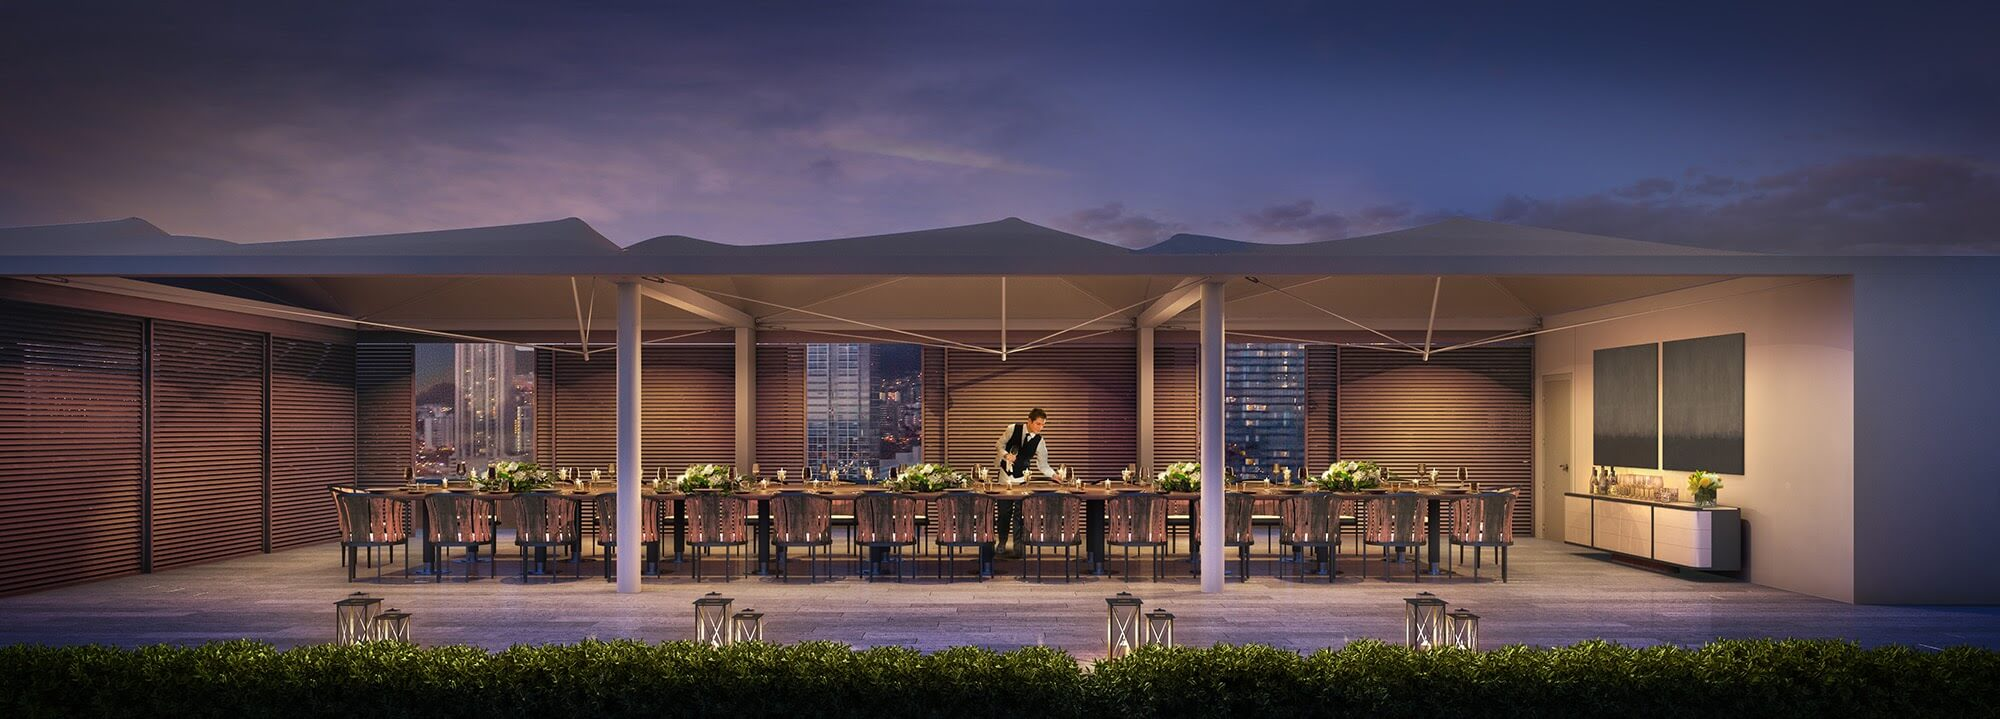 Howard-Hughes_Ward-Gateway_Luxury-Residential-Amenity-Deck-Pavilion-Dusk-Event